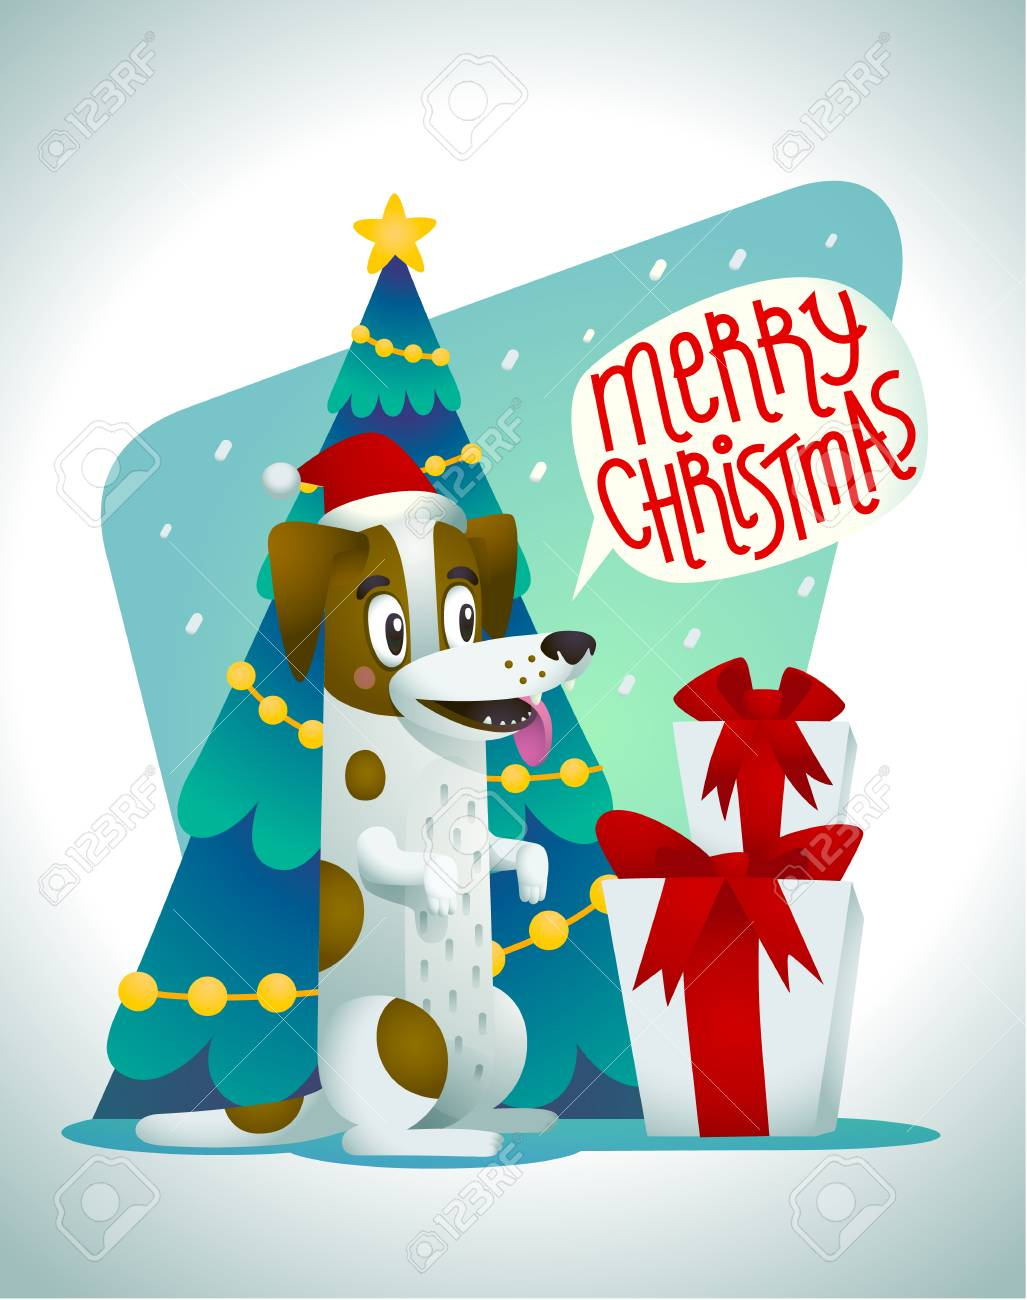 Cute Dog With Holiday Gifts And Speech Bubble Saying Merry Christmas ...